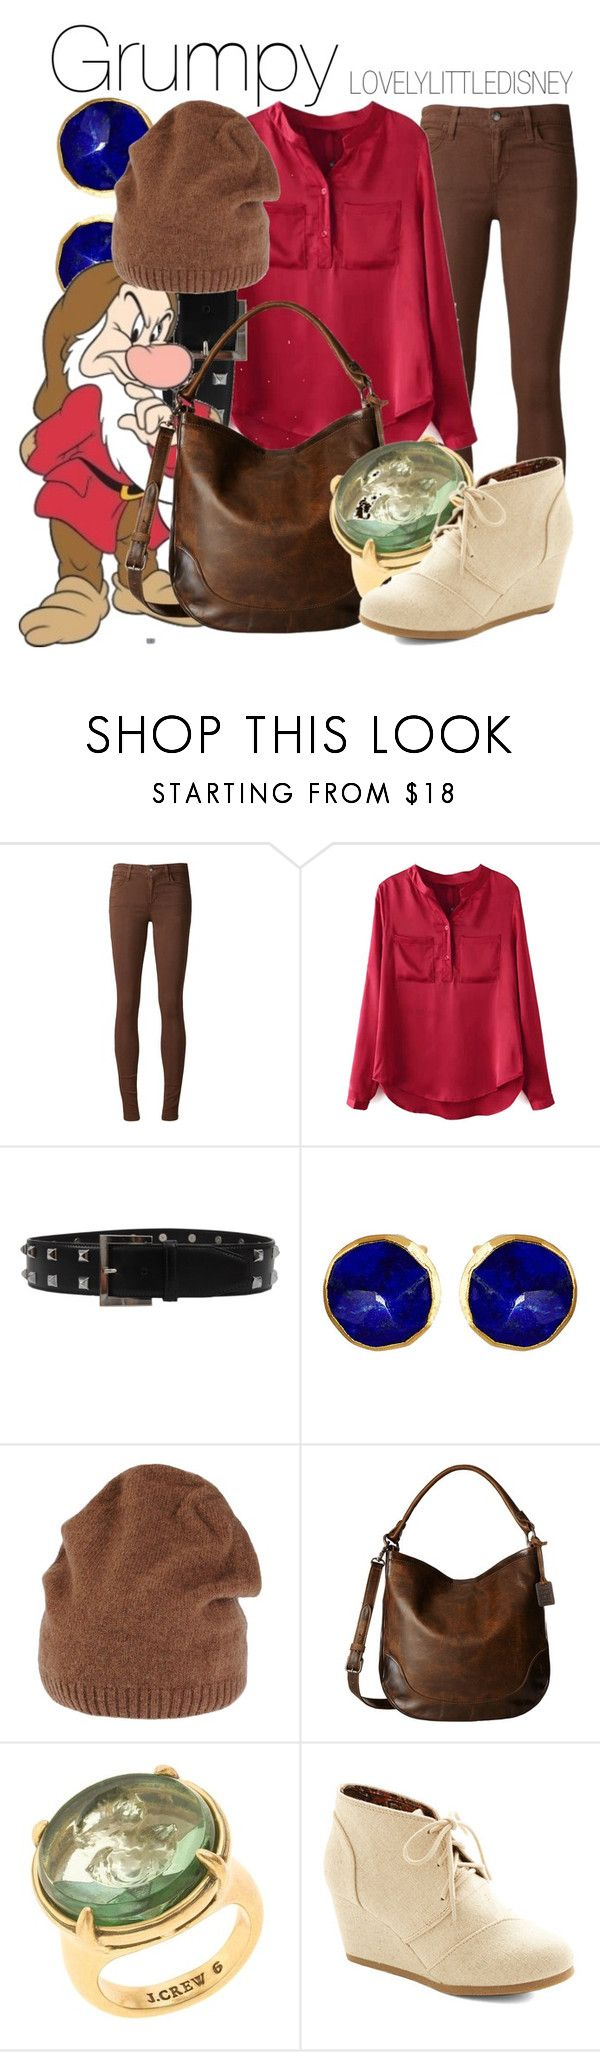 """Grumpy"" by lovelylittledisney ❤ liked on Polyvore featuring Joe's Jeans, Chicnova Fashion, Oscar de la Renta, Janna Conner, 7 For All Mankind, TESSA, Frye, J.Crew, disney and snowwhite"